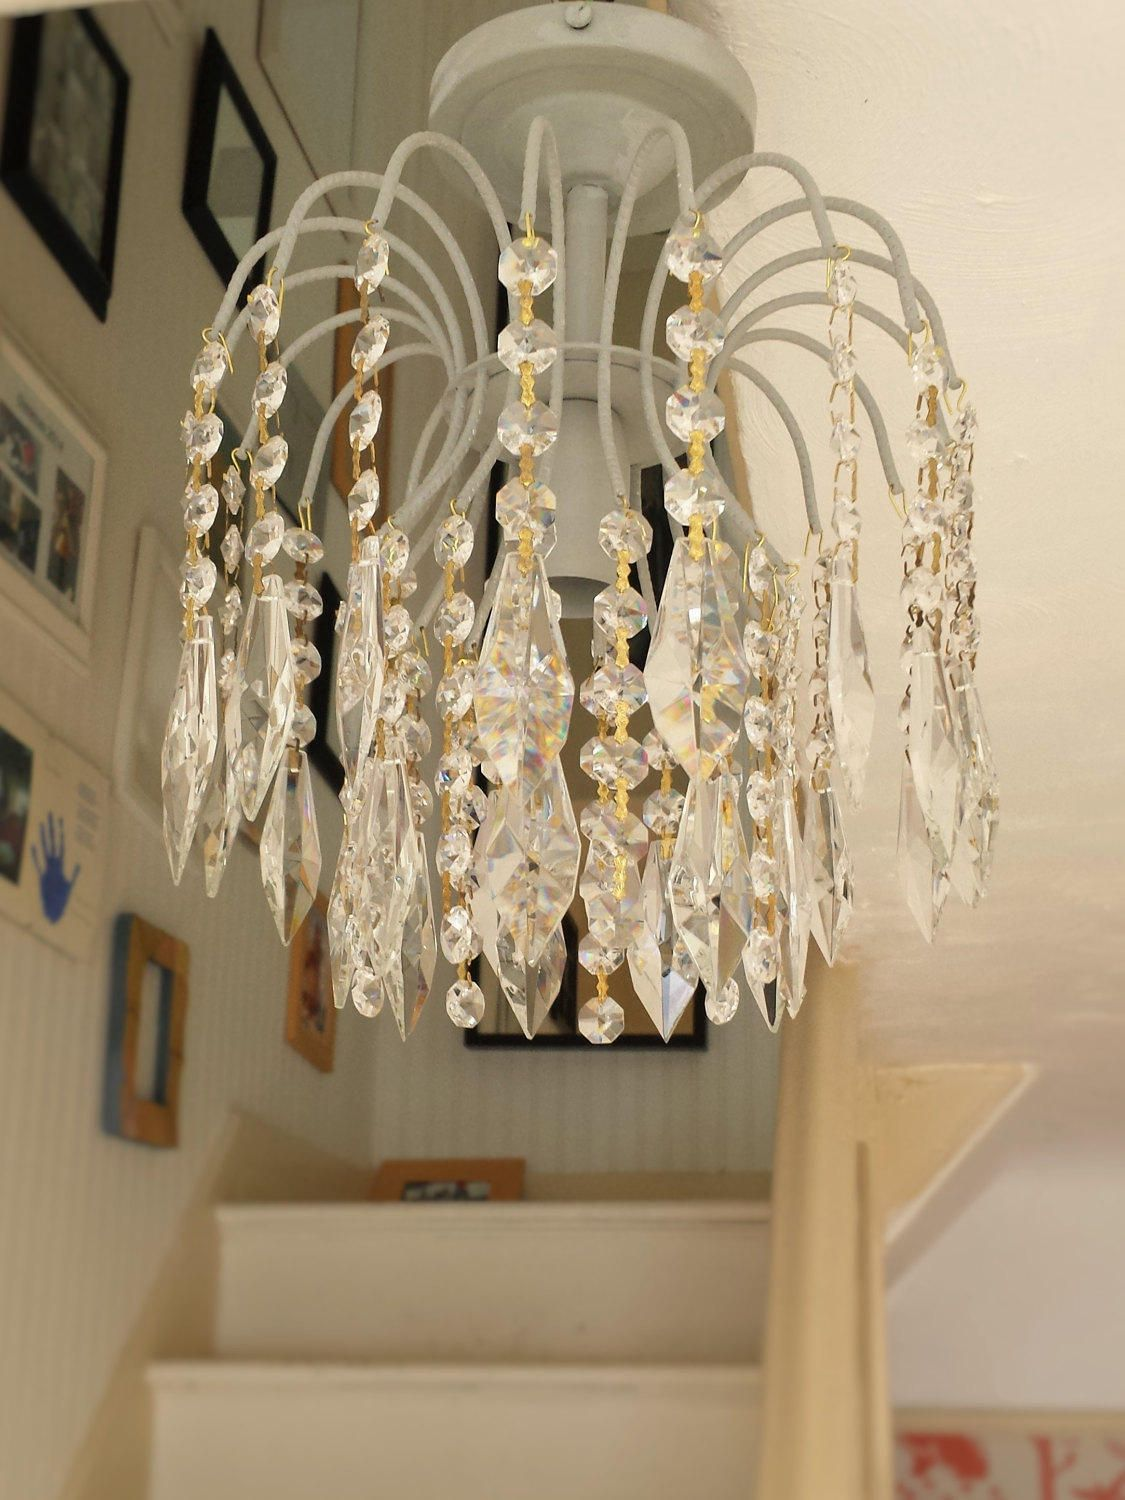 Lighting Crystal Chandelier Paris Grey Annie Sloan Chalk Paint Upcycled Light Modern Flush Mount Fixture With Leaded Glass By